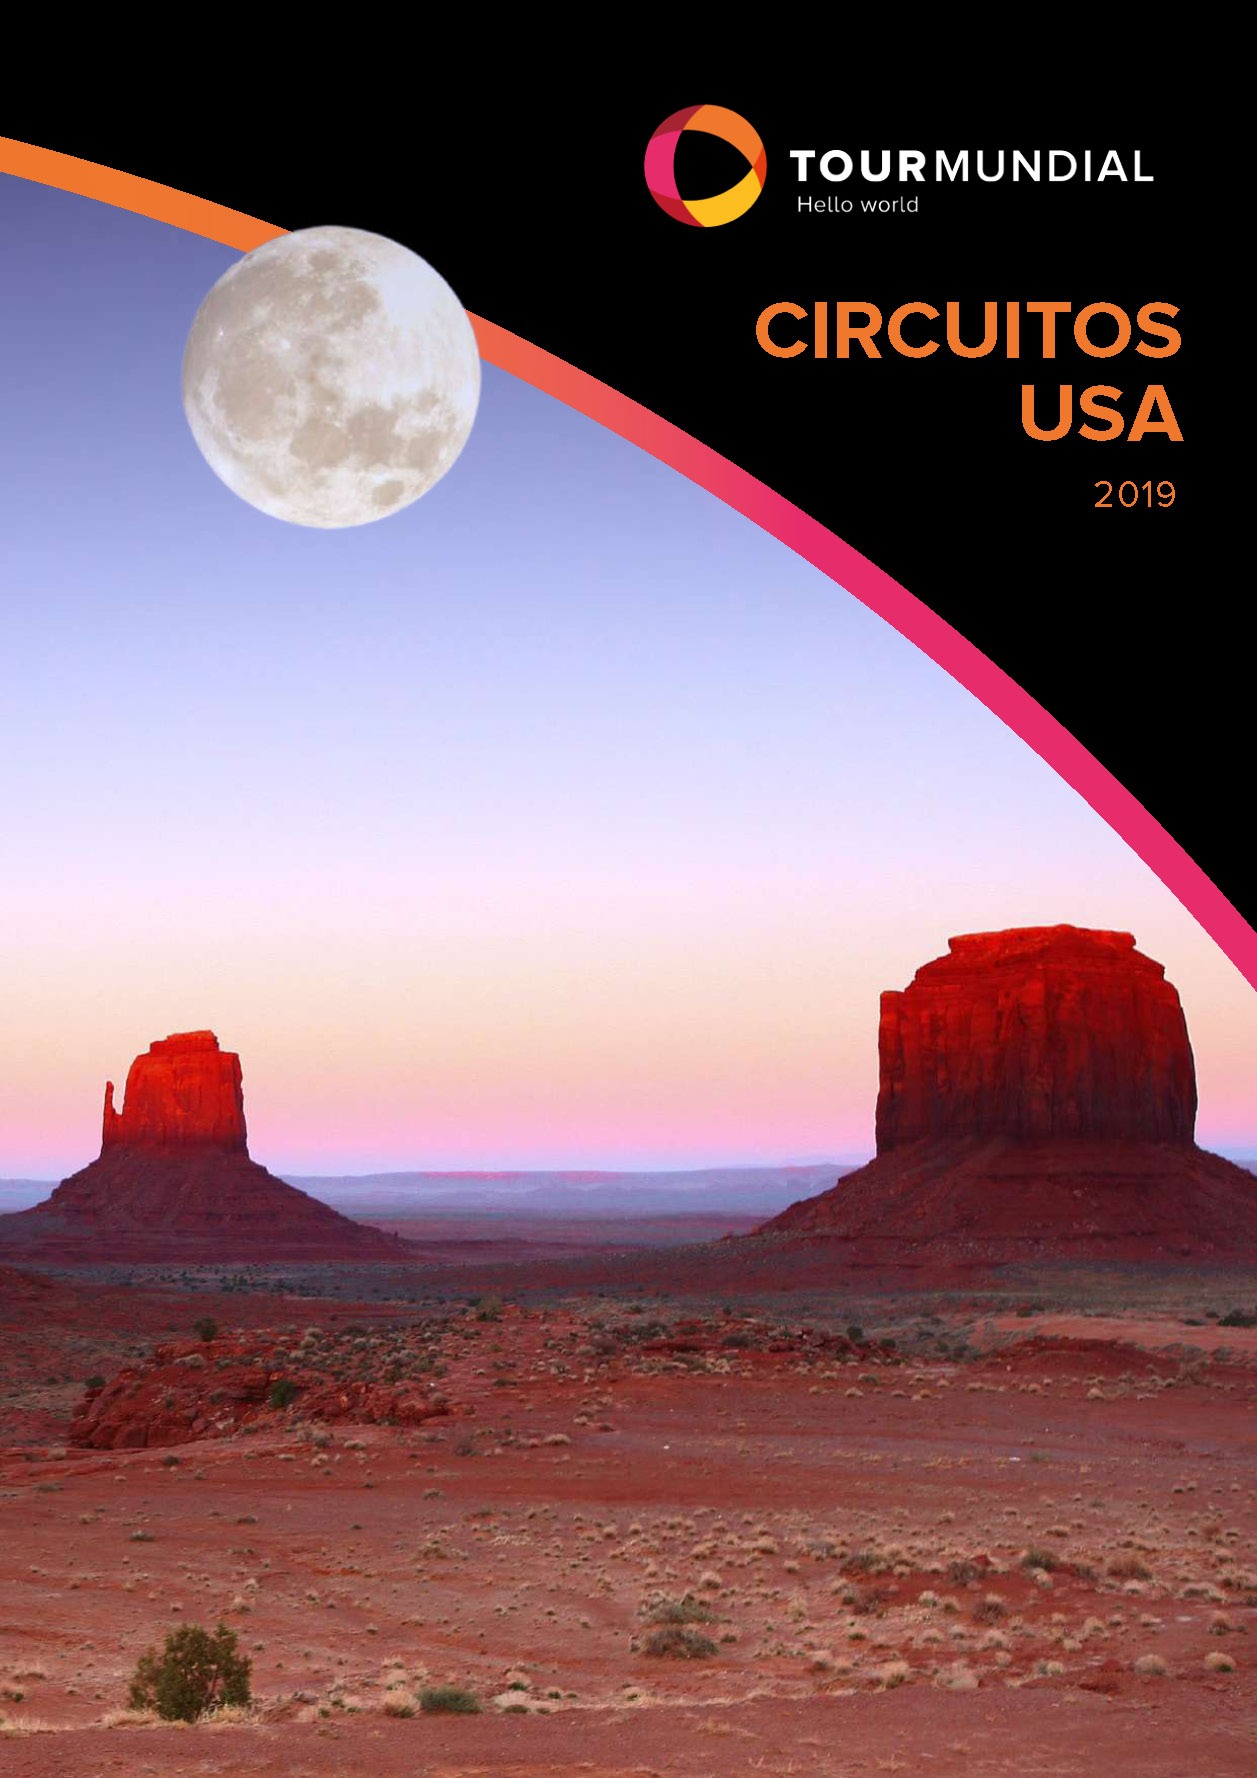 Catalogo Tourmundial Circuitos USA 2019